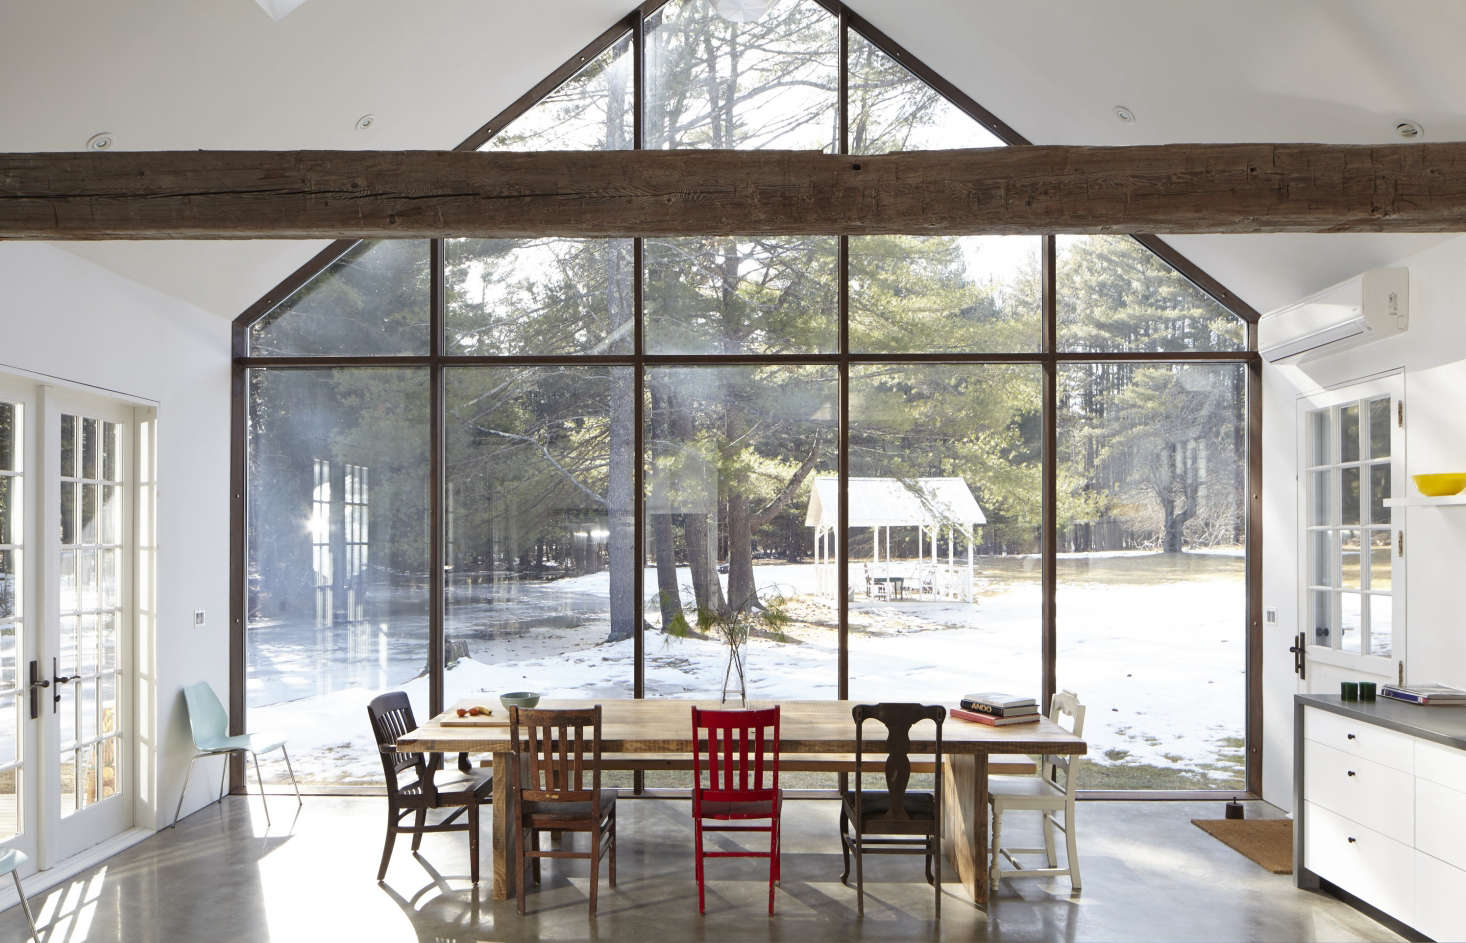 The kitchen resides in a modern addition that echoes the roofline of the original house. The